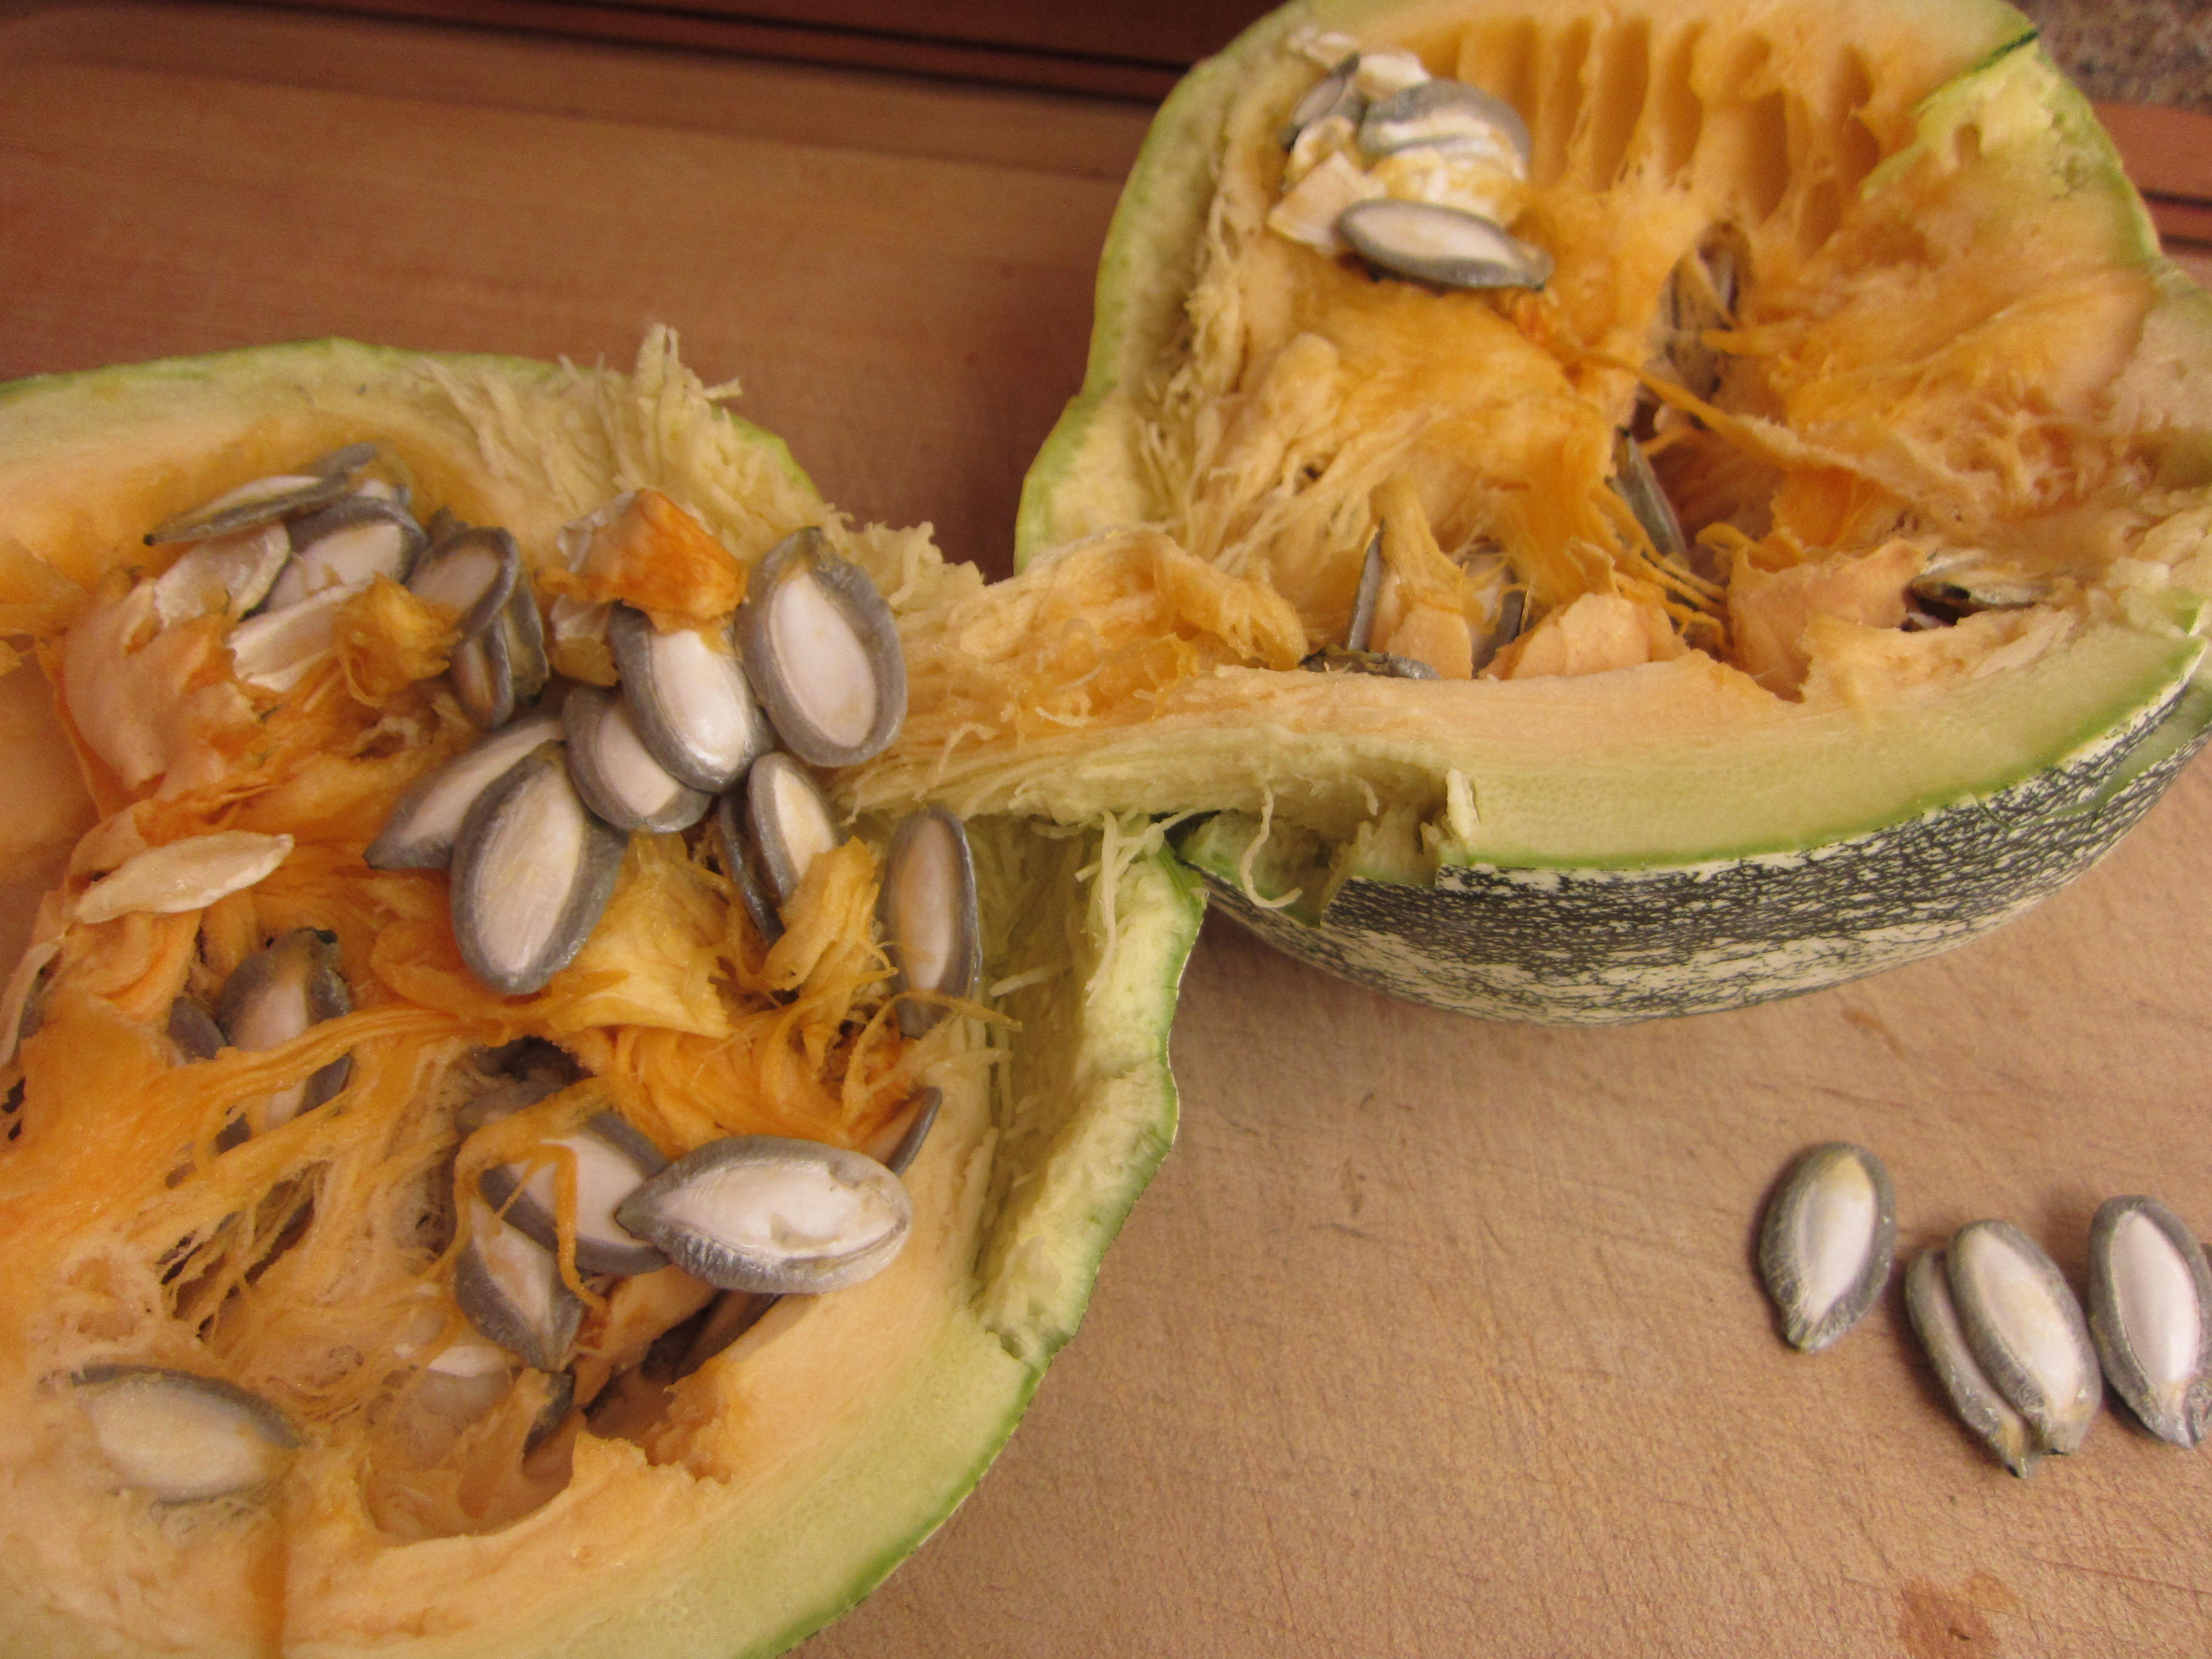 Glorious Silver Edge pumpkin seeds, literally in the flesh.